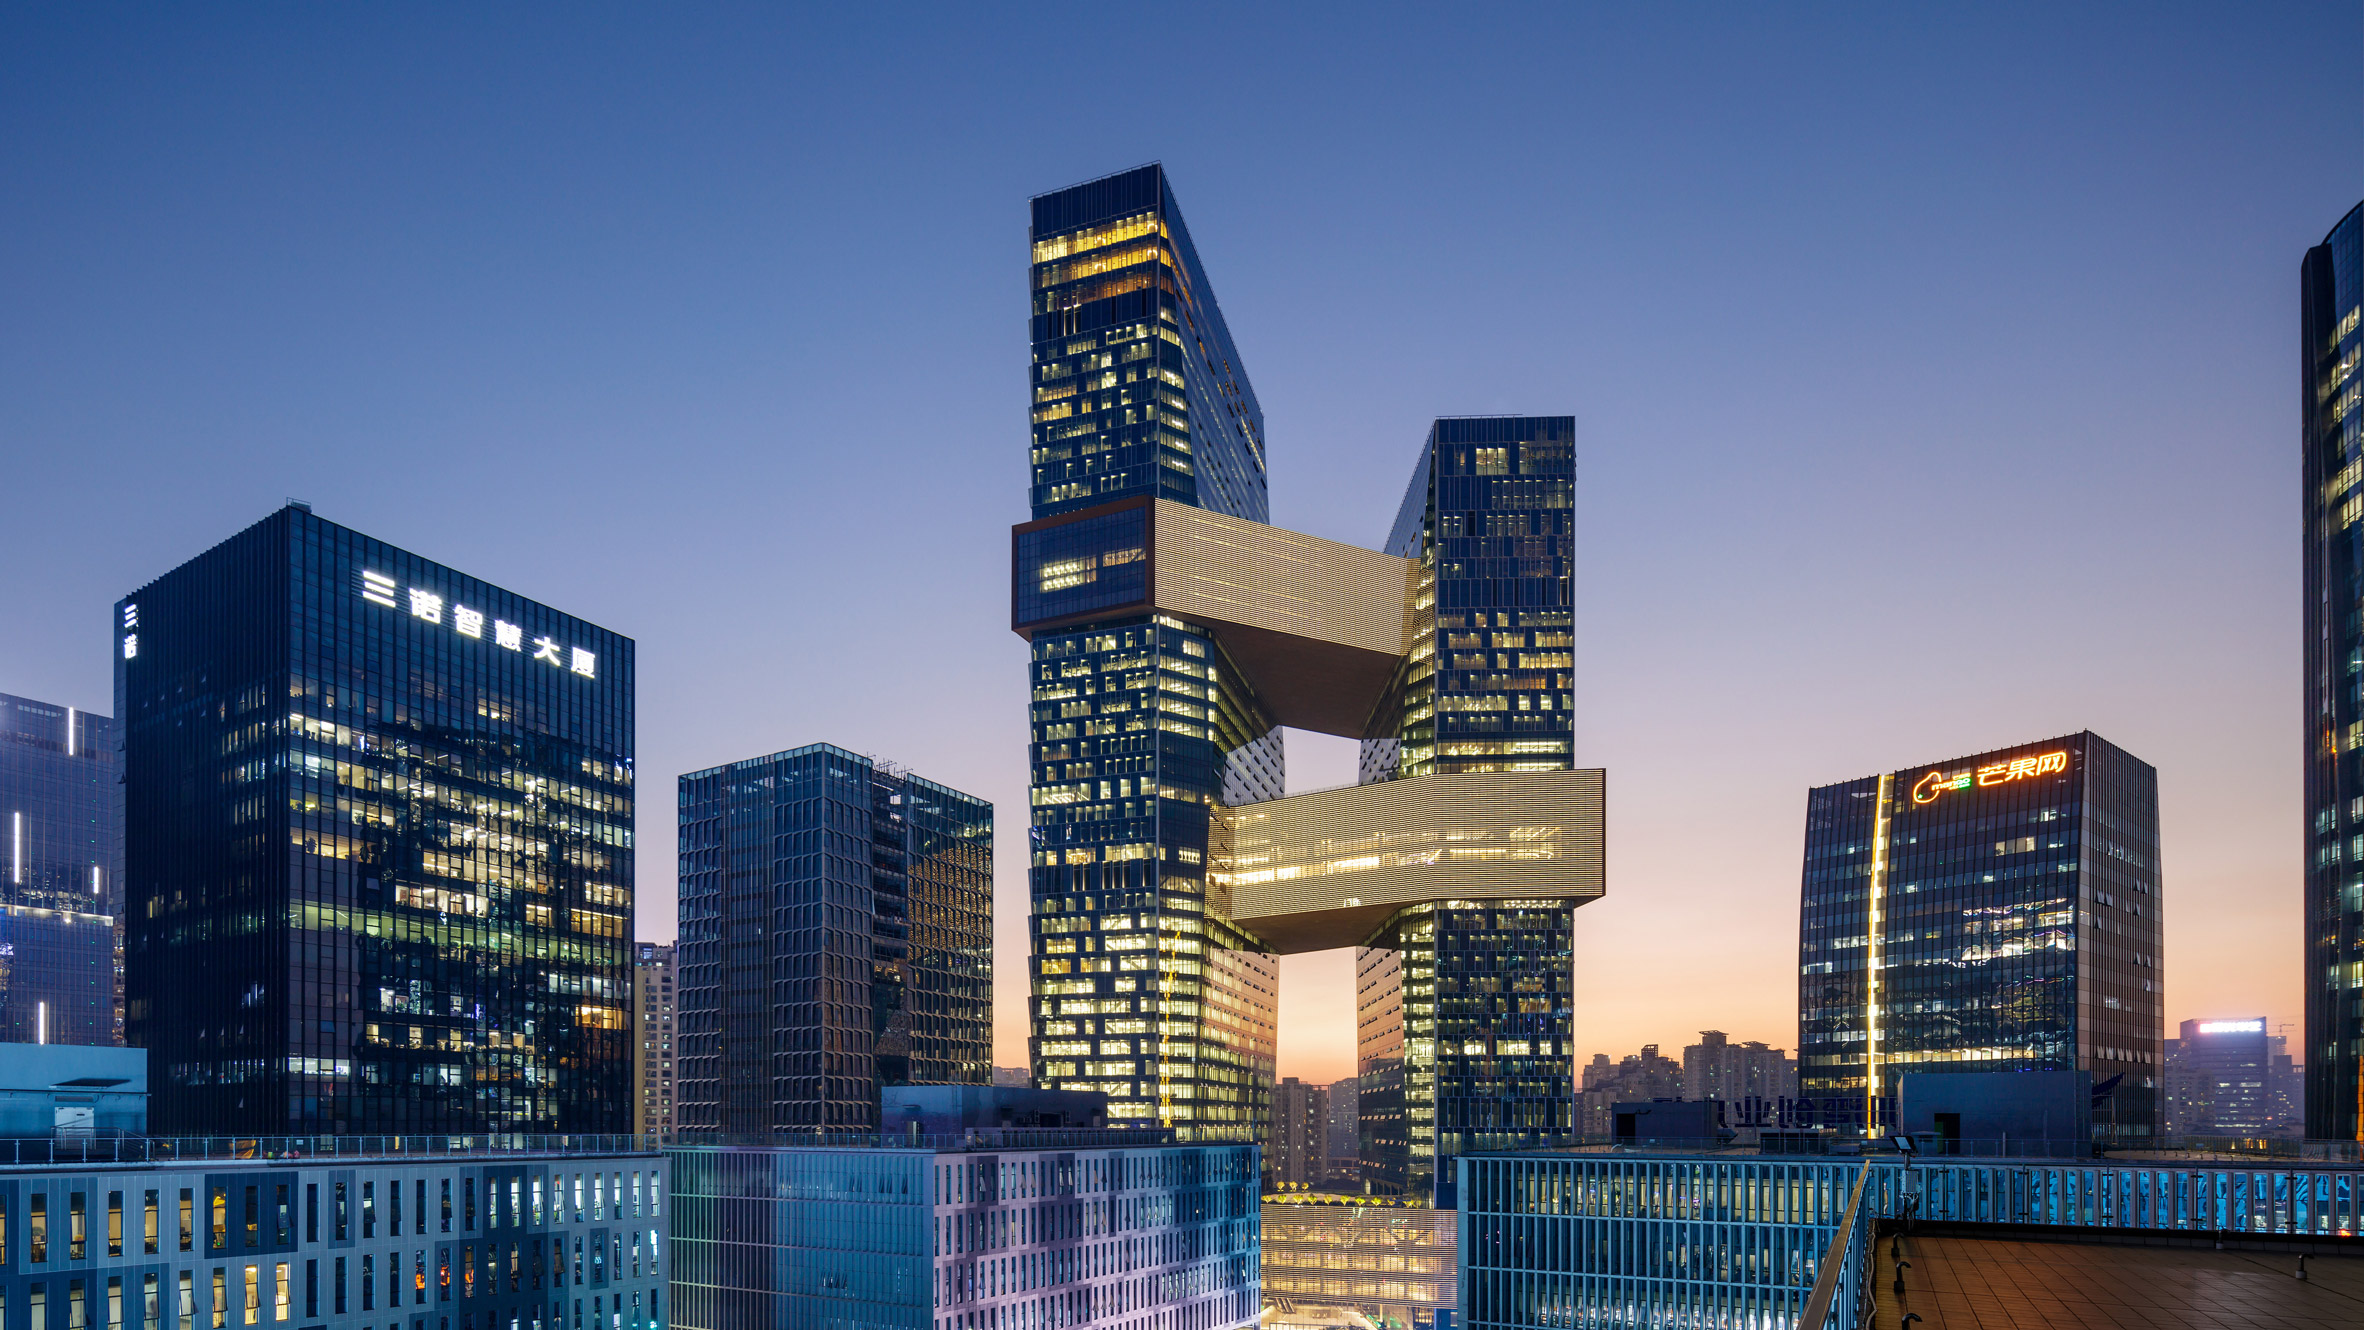 Tencent's Global Headquarters by NBBJ